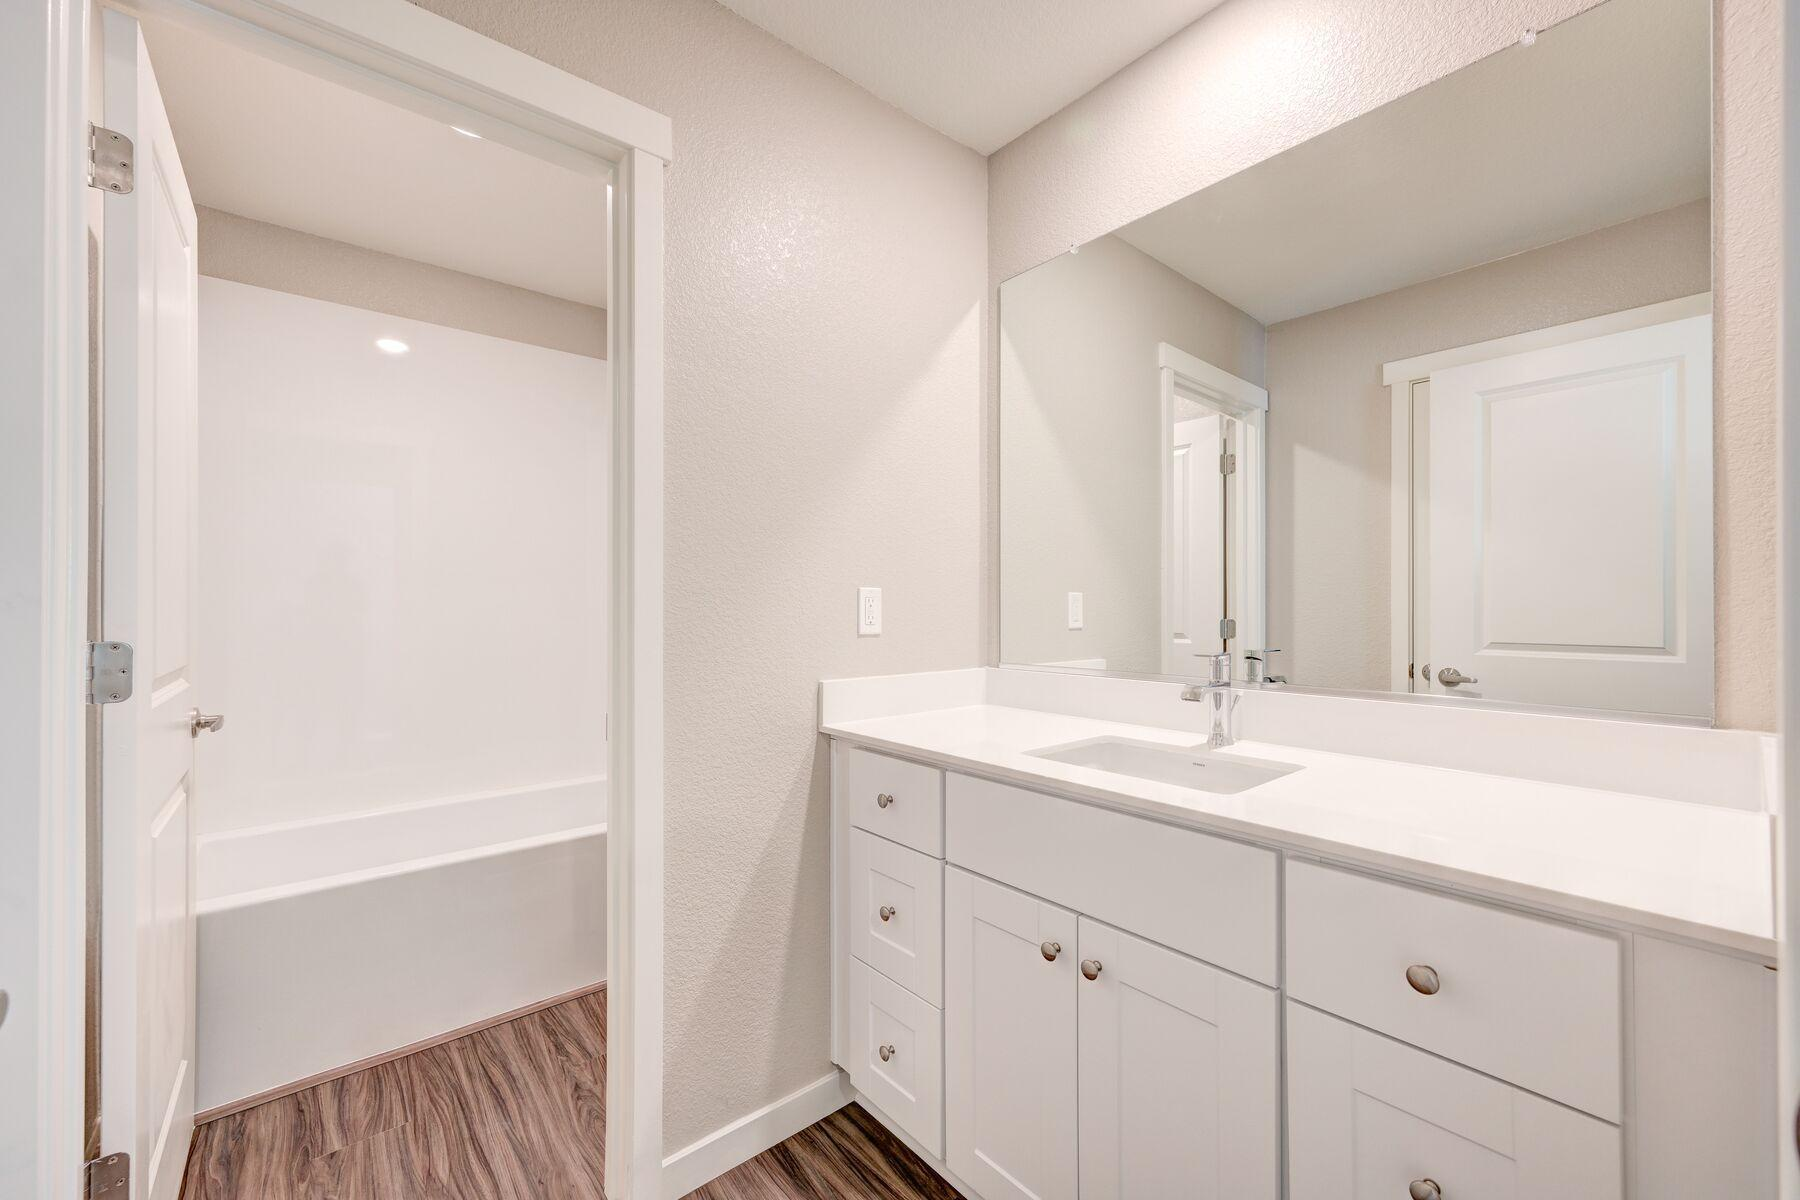 Bathroom featured in the Empire By LGI Homes in Sacramento, CA